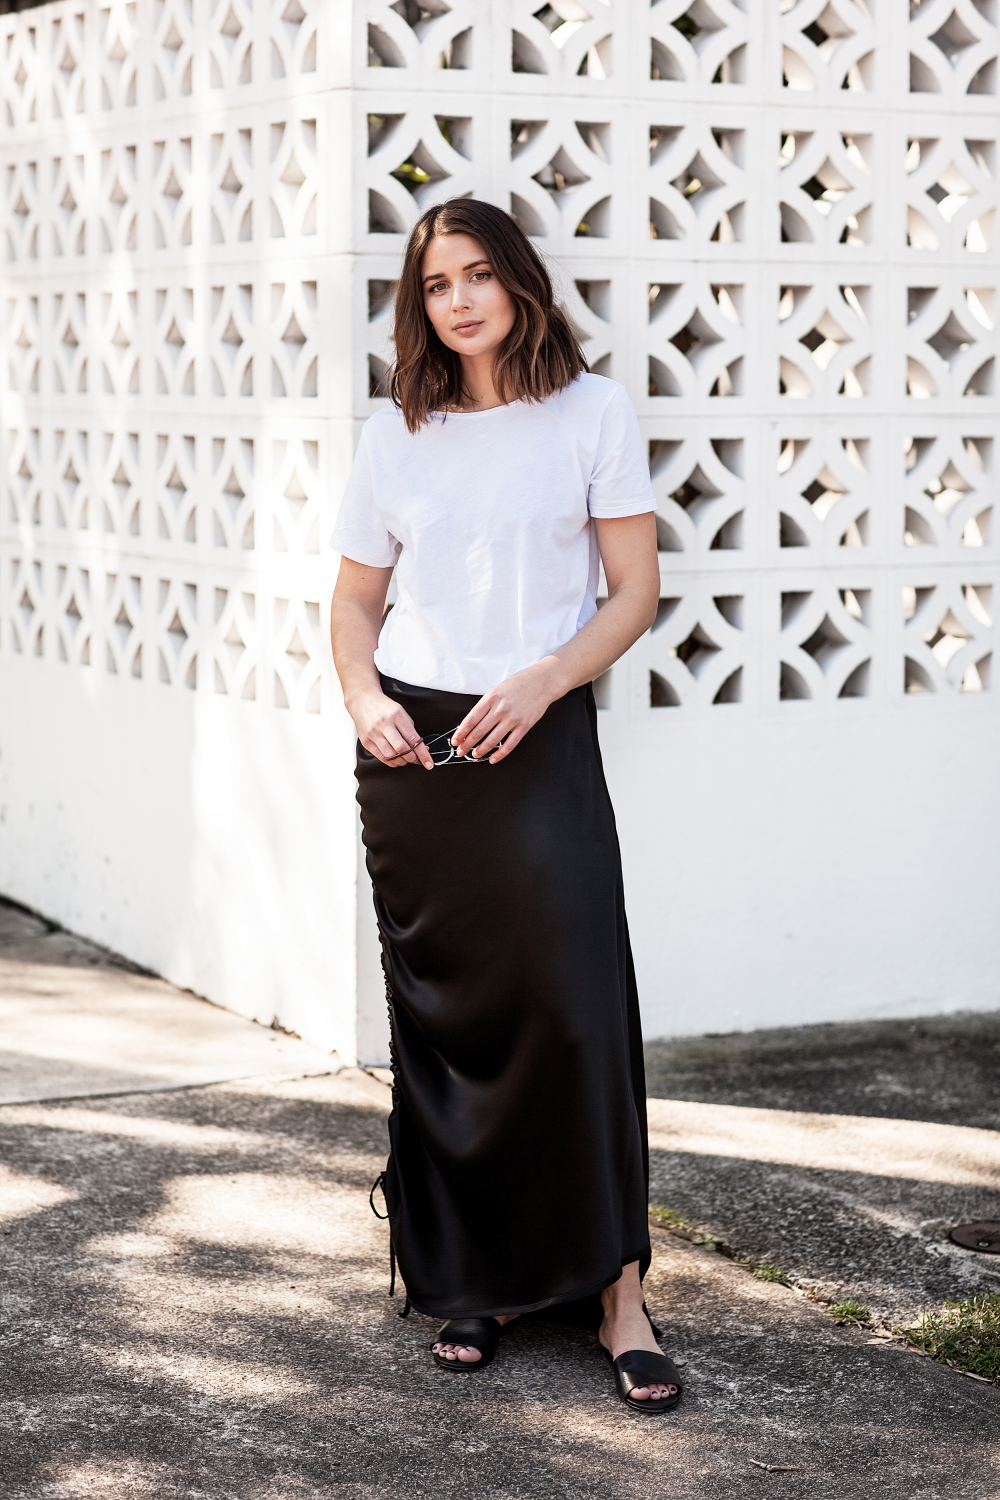 Georgia Alice Rouched Water Skirt and white t-shirt | Streetstyle | Outfit | HarperandHarley